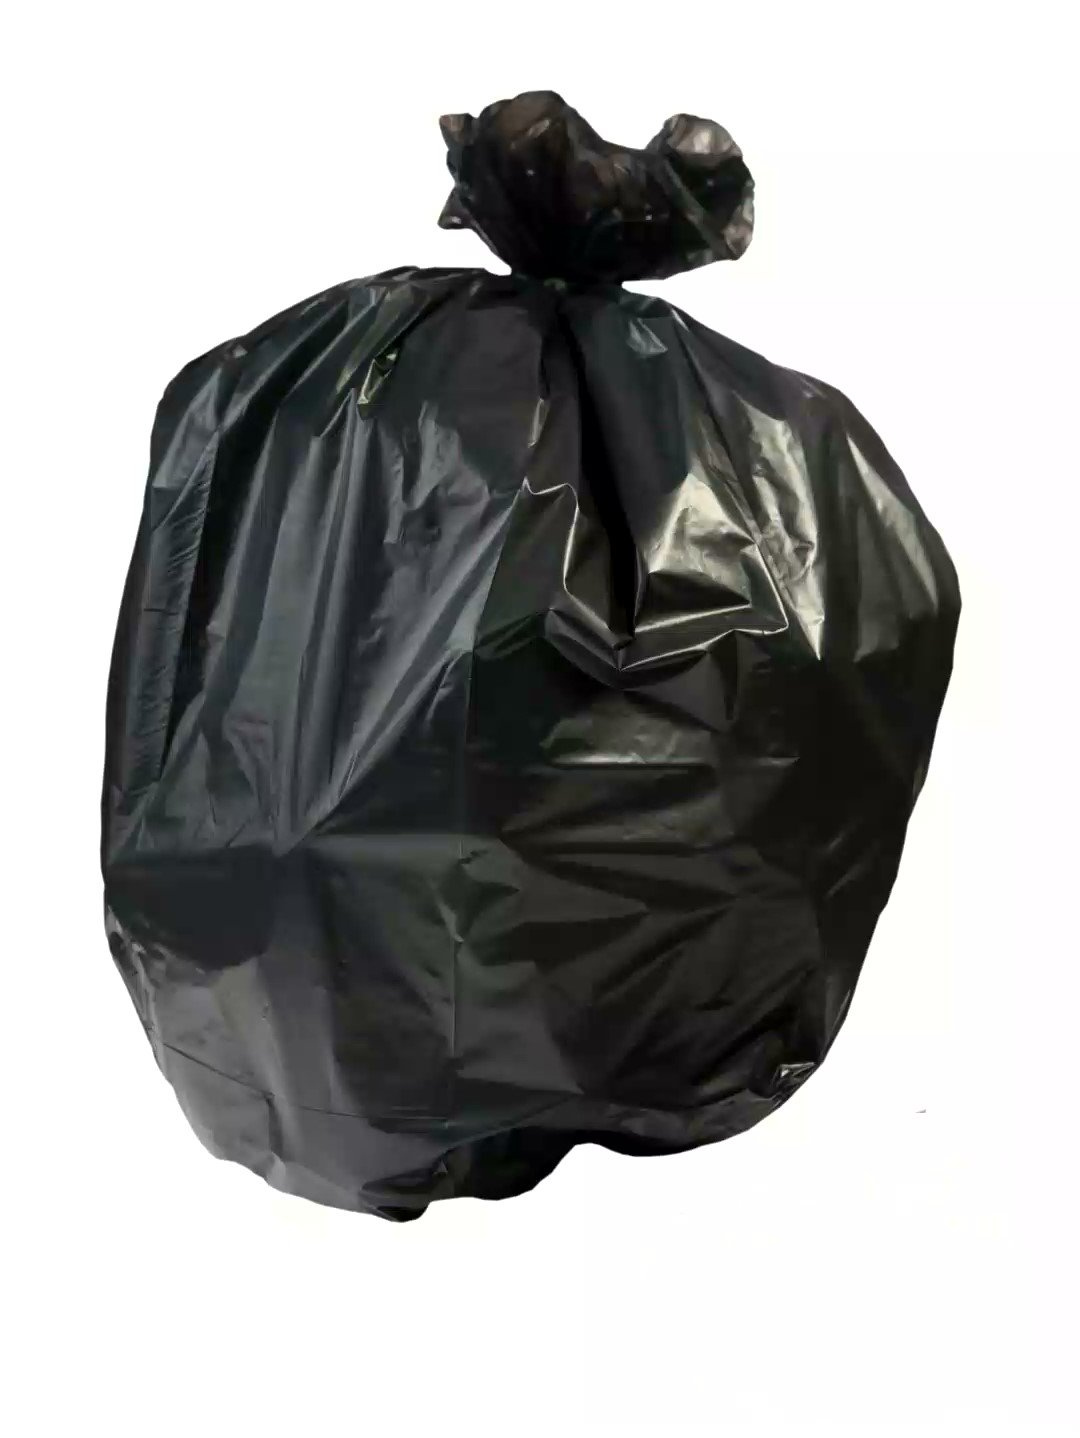 BTG-57XH, 44-55 Gallon, Heavy Can Liner Trash Bags, 100 count, 1.5 Mil LLDPE, Black, 36x57 inches, MADE IN USA